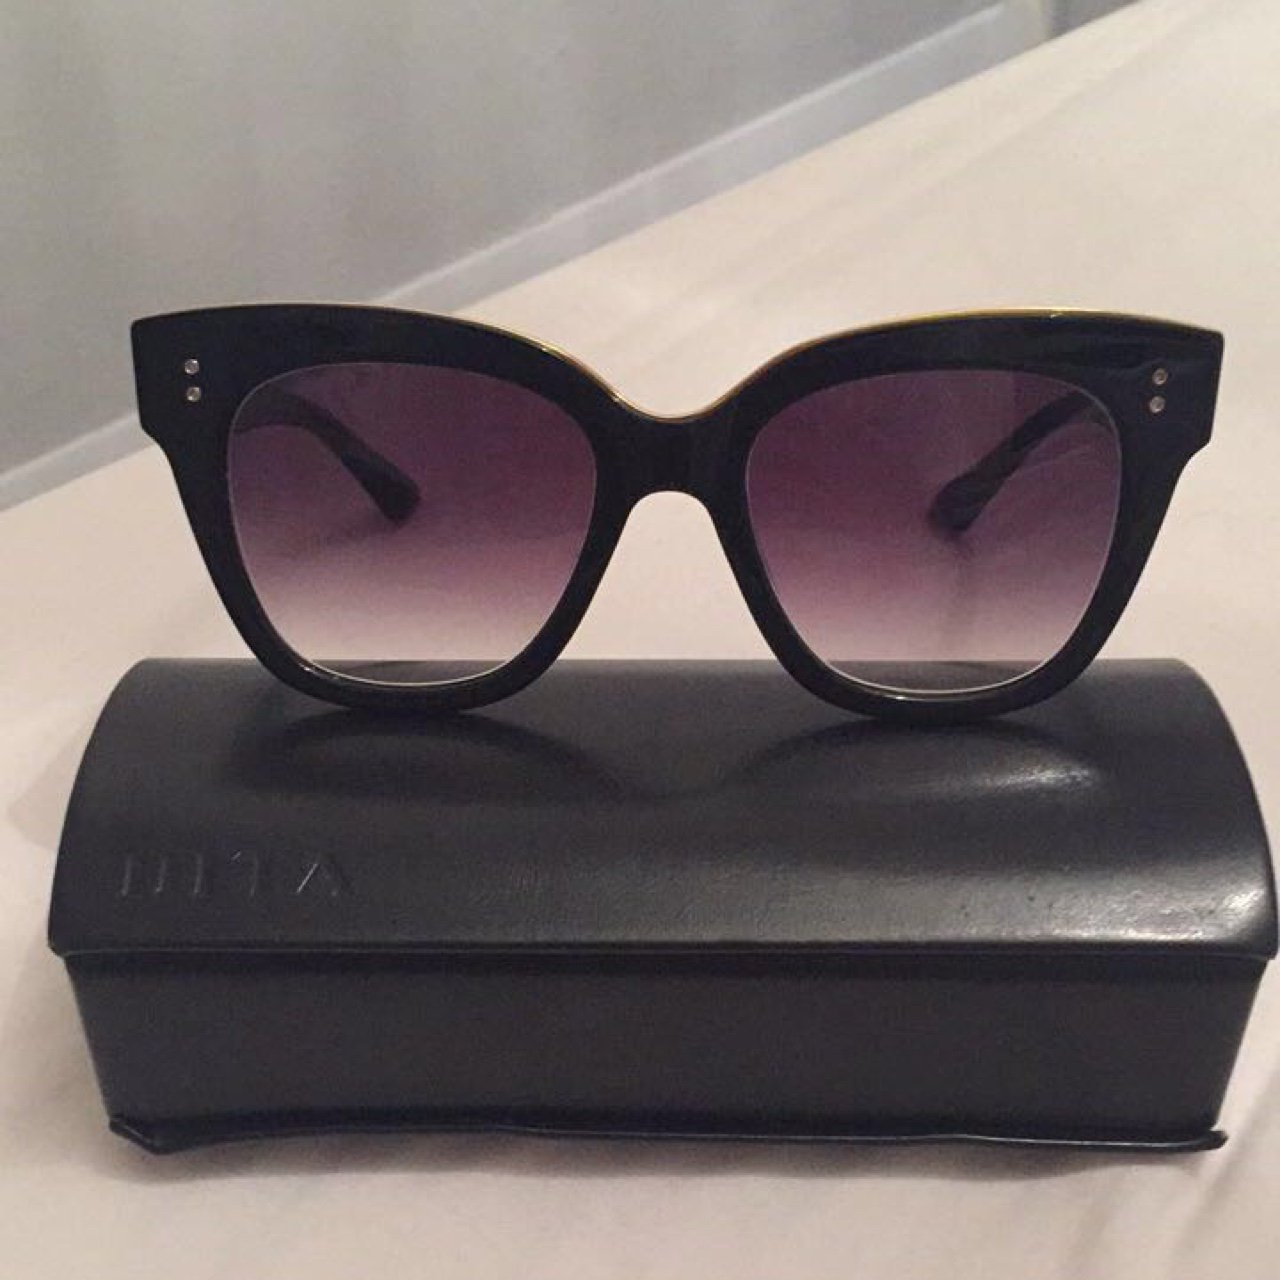 5a9e680db5ad Designer Dita sunglasses purchased as a gift from seen . on - Depop